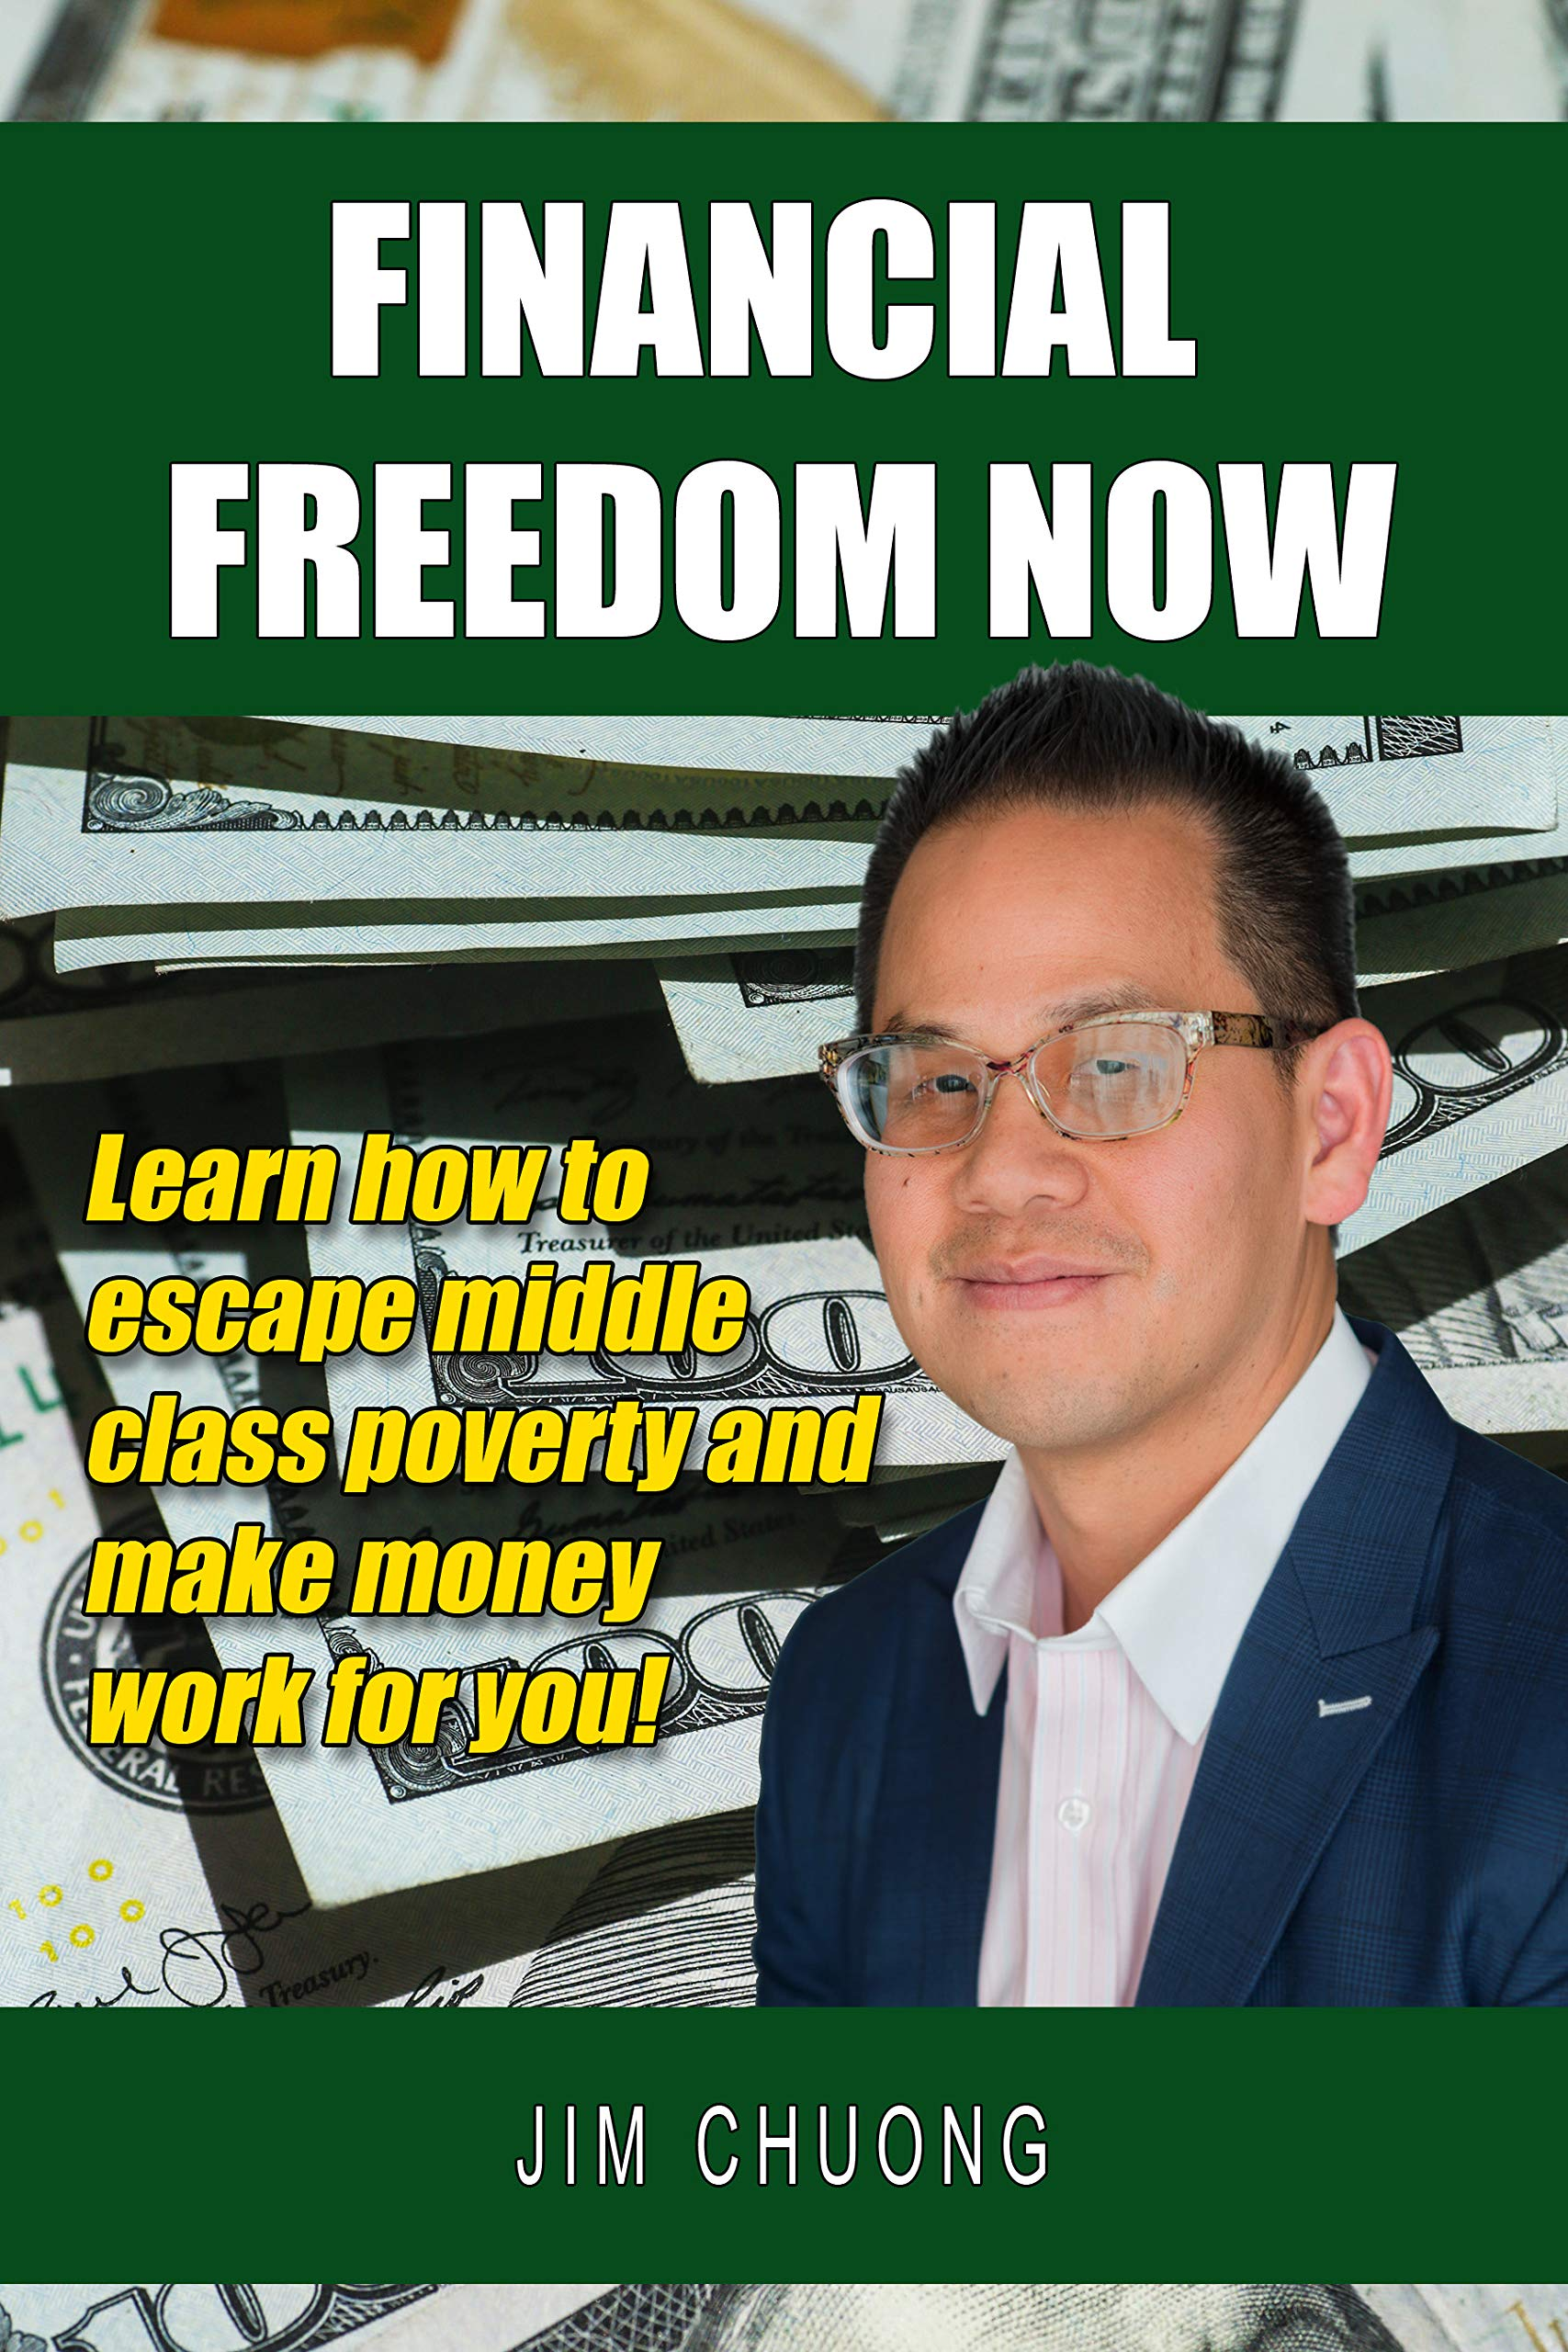 Financial Freedom Now: Learn how to escape middle class poverty and make money work for you!